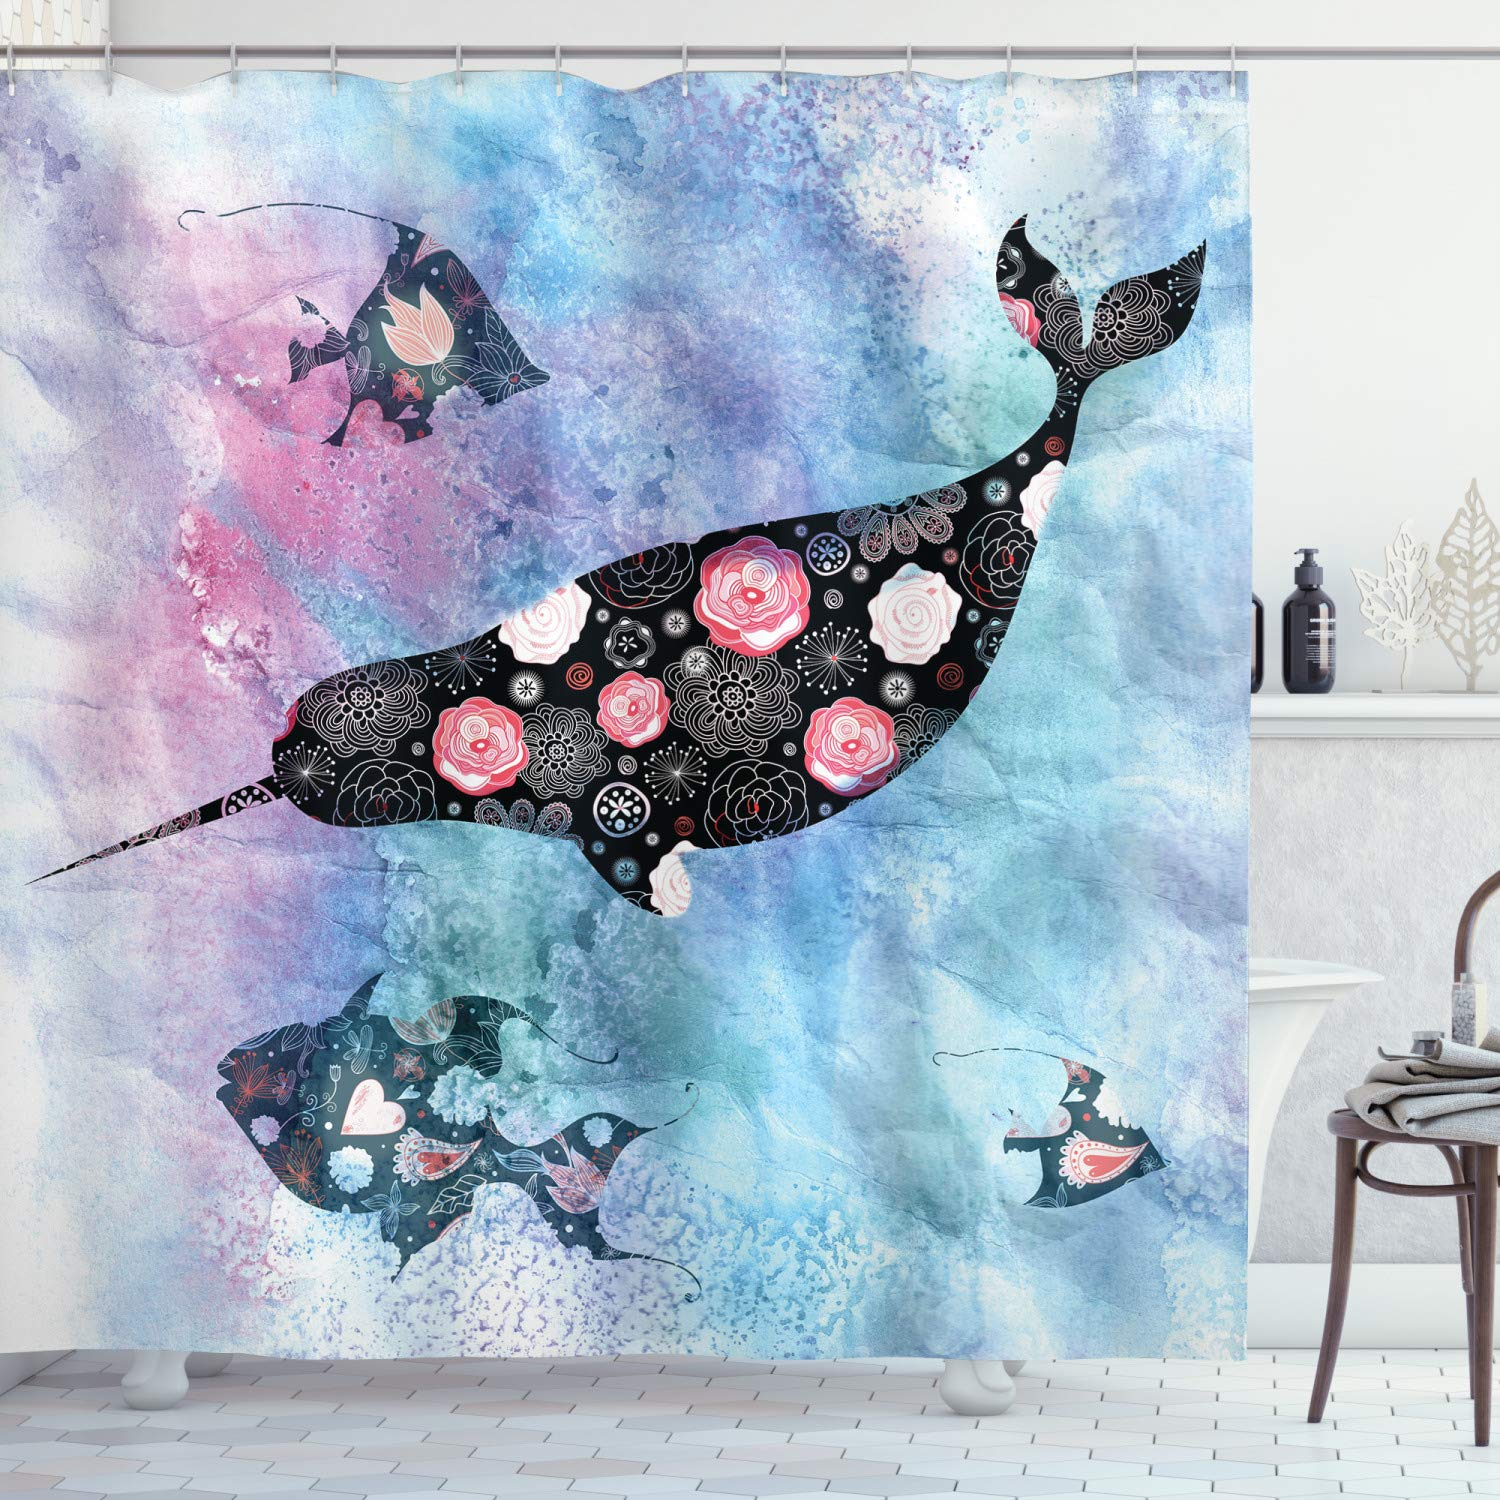 """Ambesonne Narwhal Shower Curtain, Floral Patterned Narwhal Whale and Fish Psychedelic with Abstract Art Inspirations, Cloth Fabric Bathroom Decor Set with Hooks, 84"""" Long Extra, Purple Blue"""